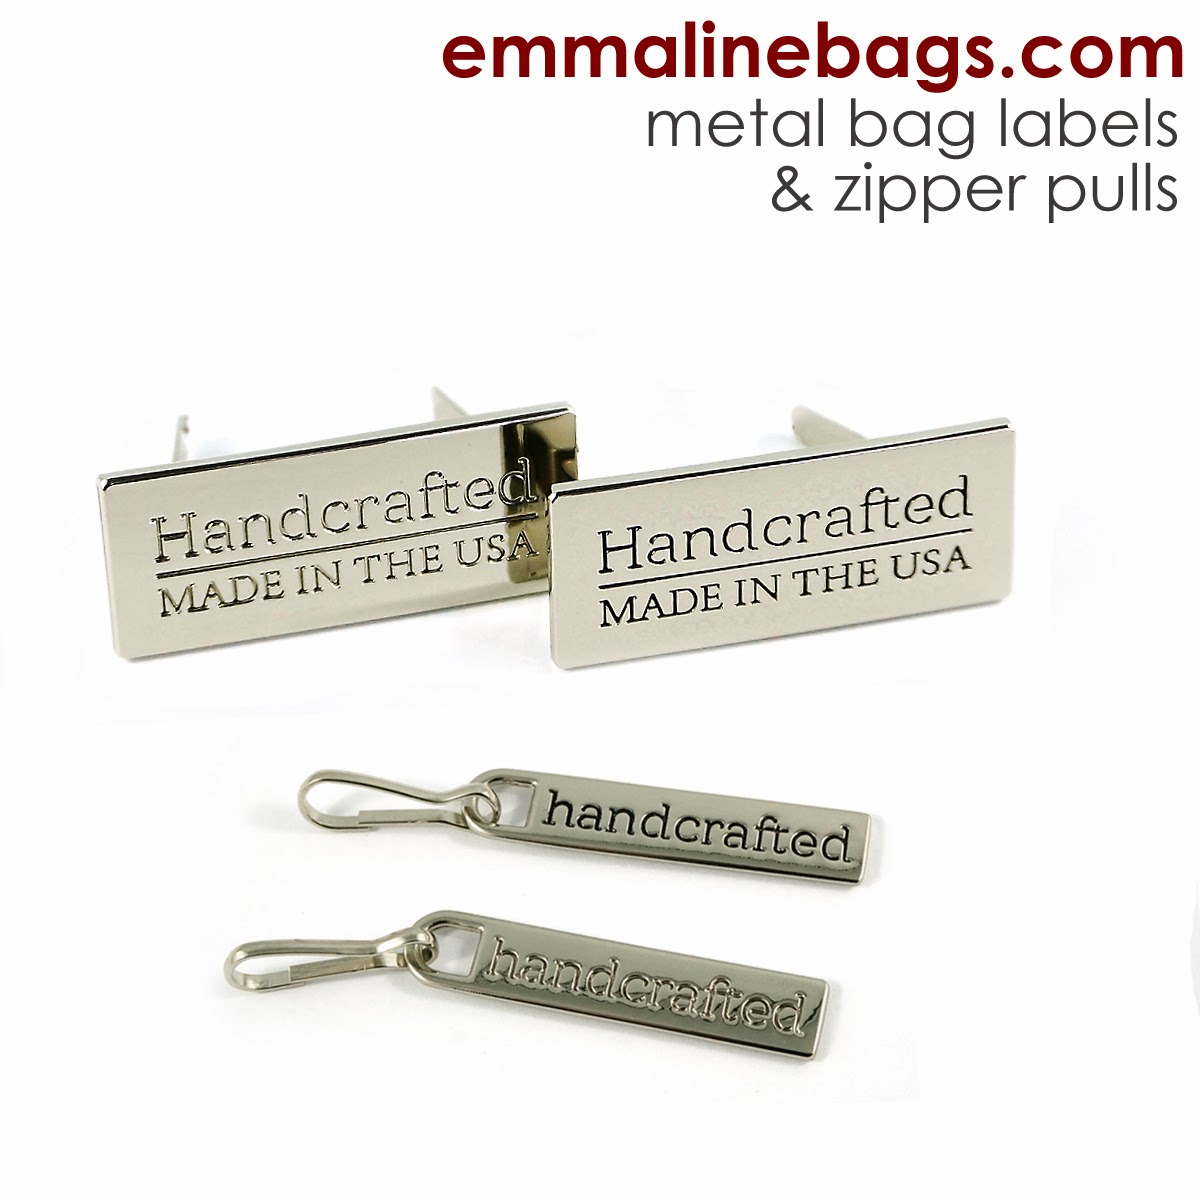 Made in USA labels and zipper pulls